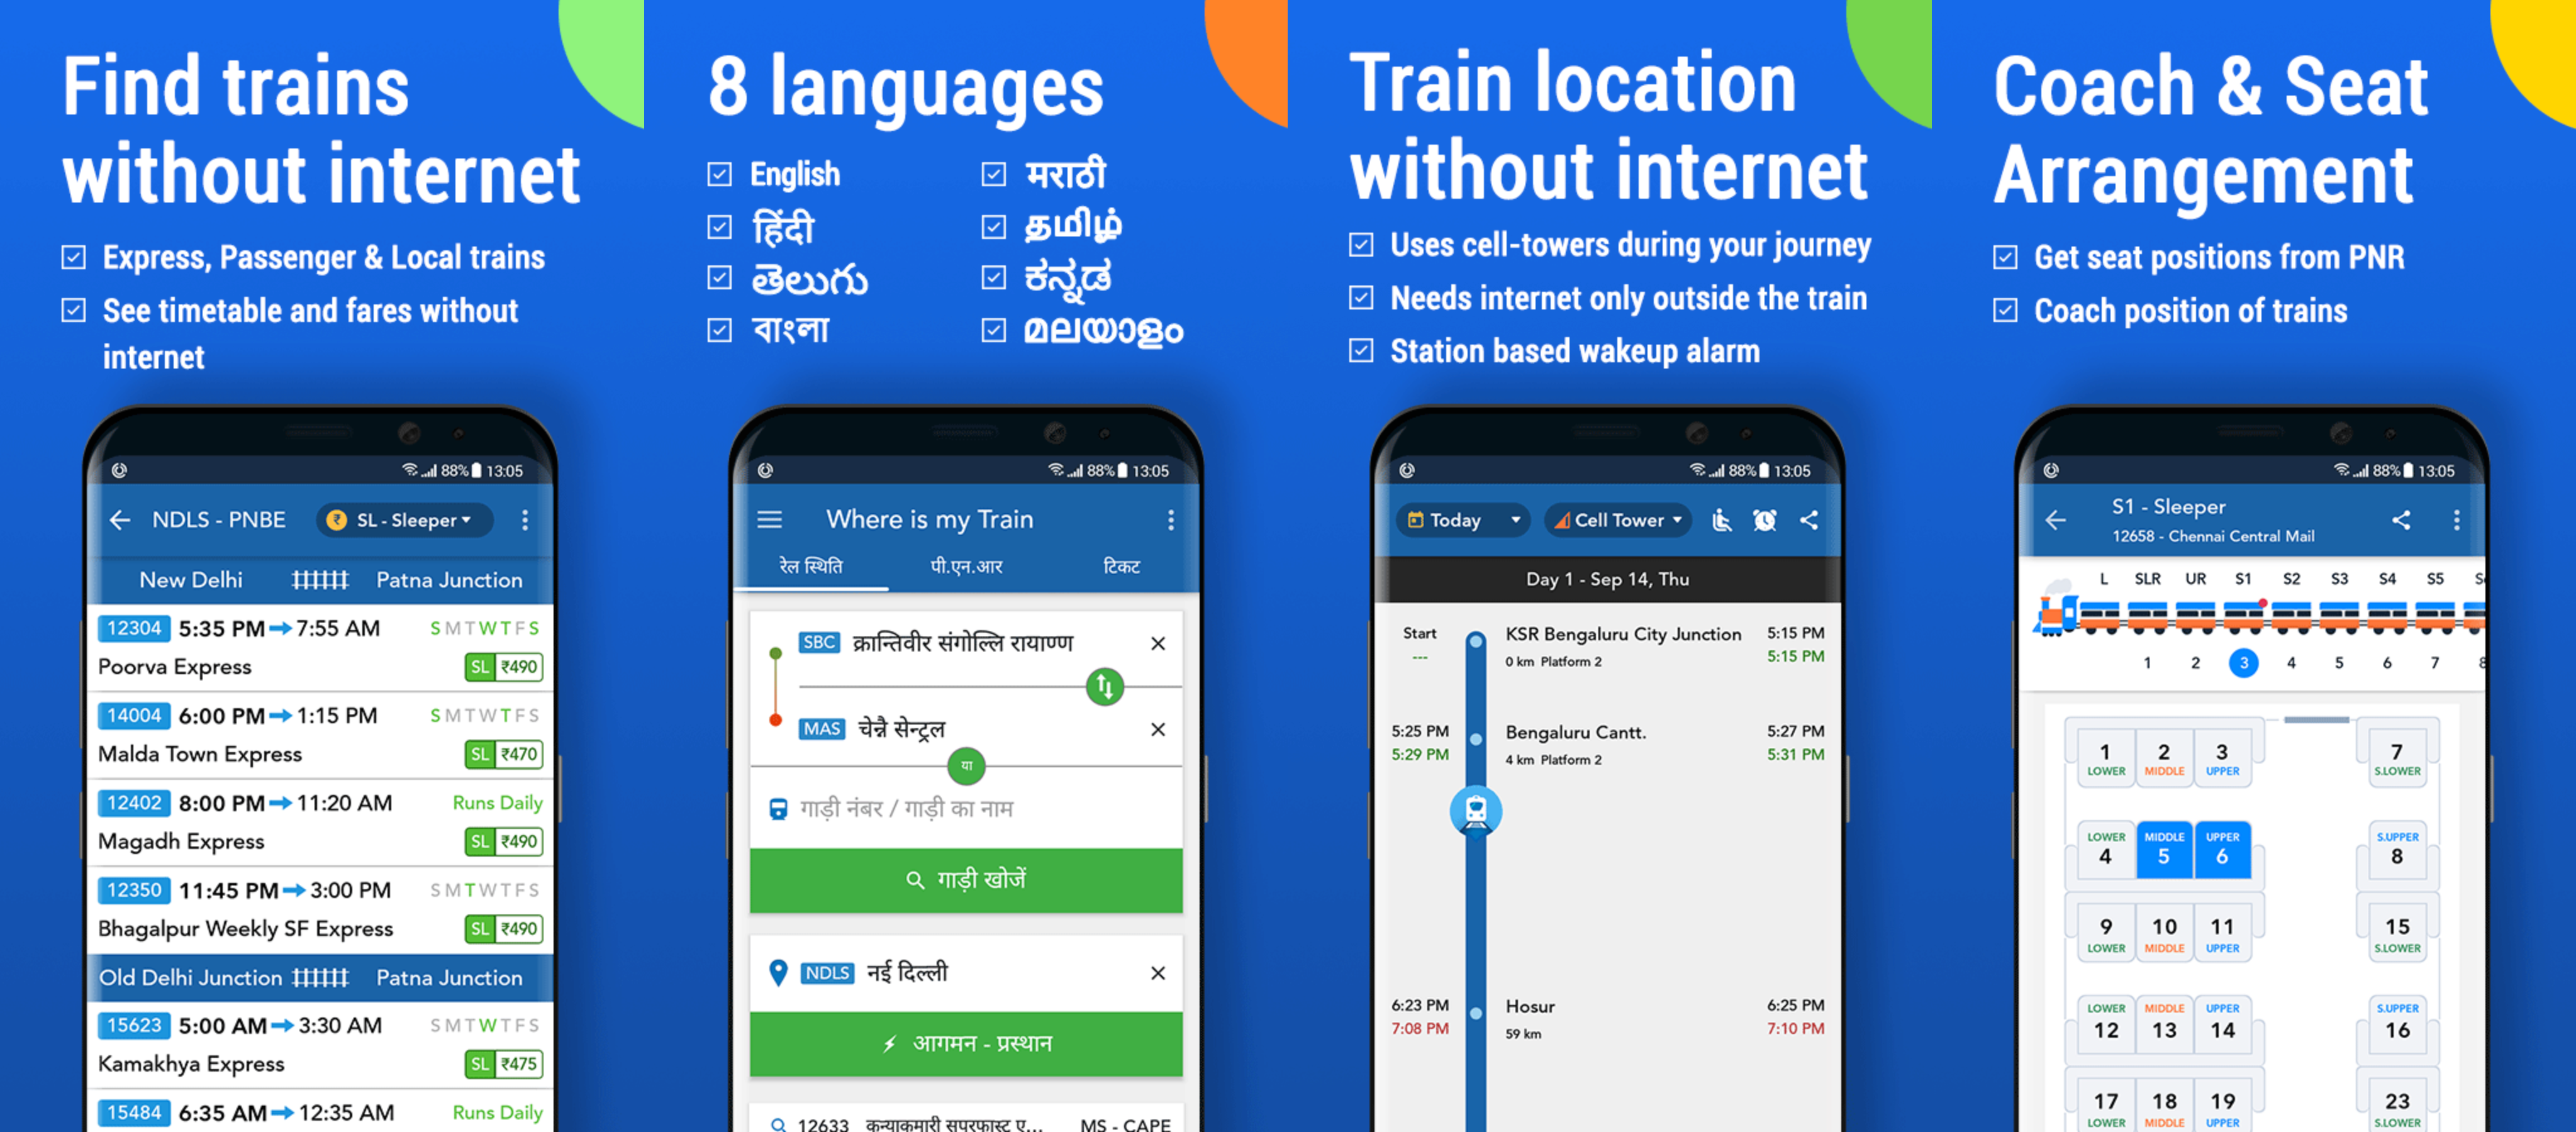 wheres my train - One of India's most popular train tracking apps is acquired by Google